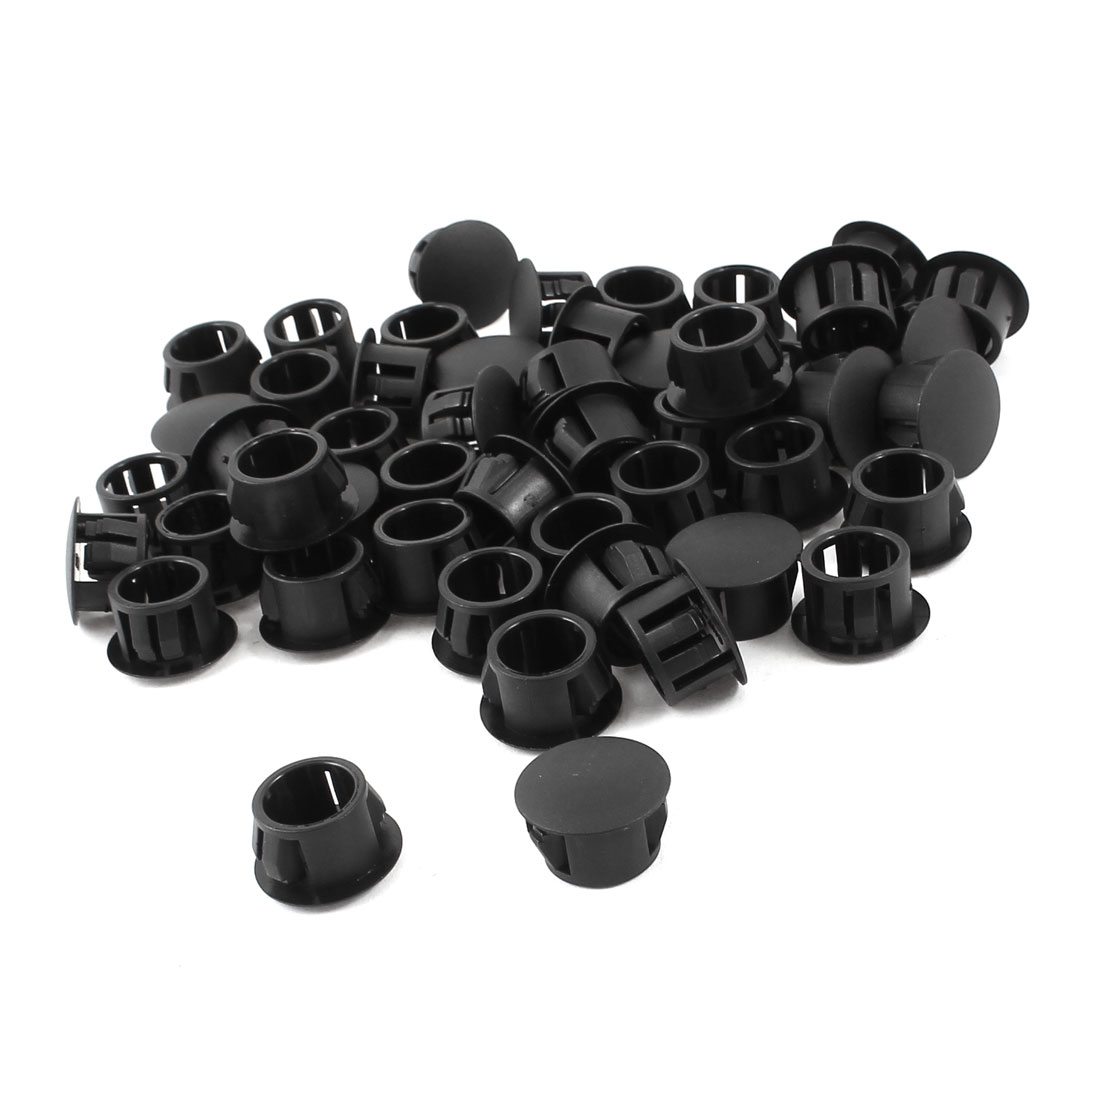 50 Pcs Plastic Snap in Type Locking Hole Plugs 13mm x 16.5mm x 10mm